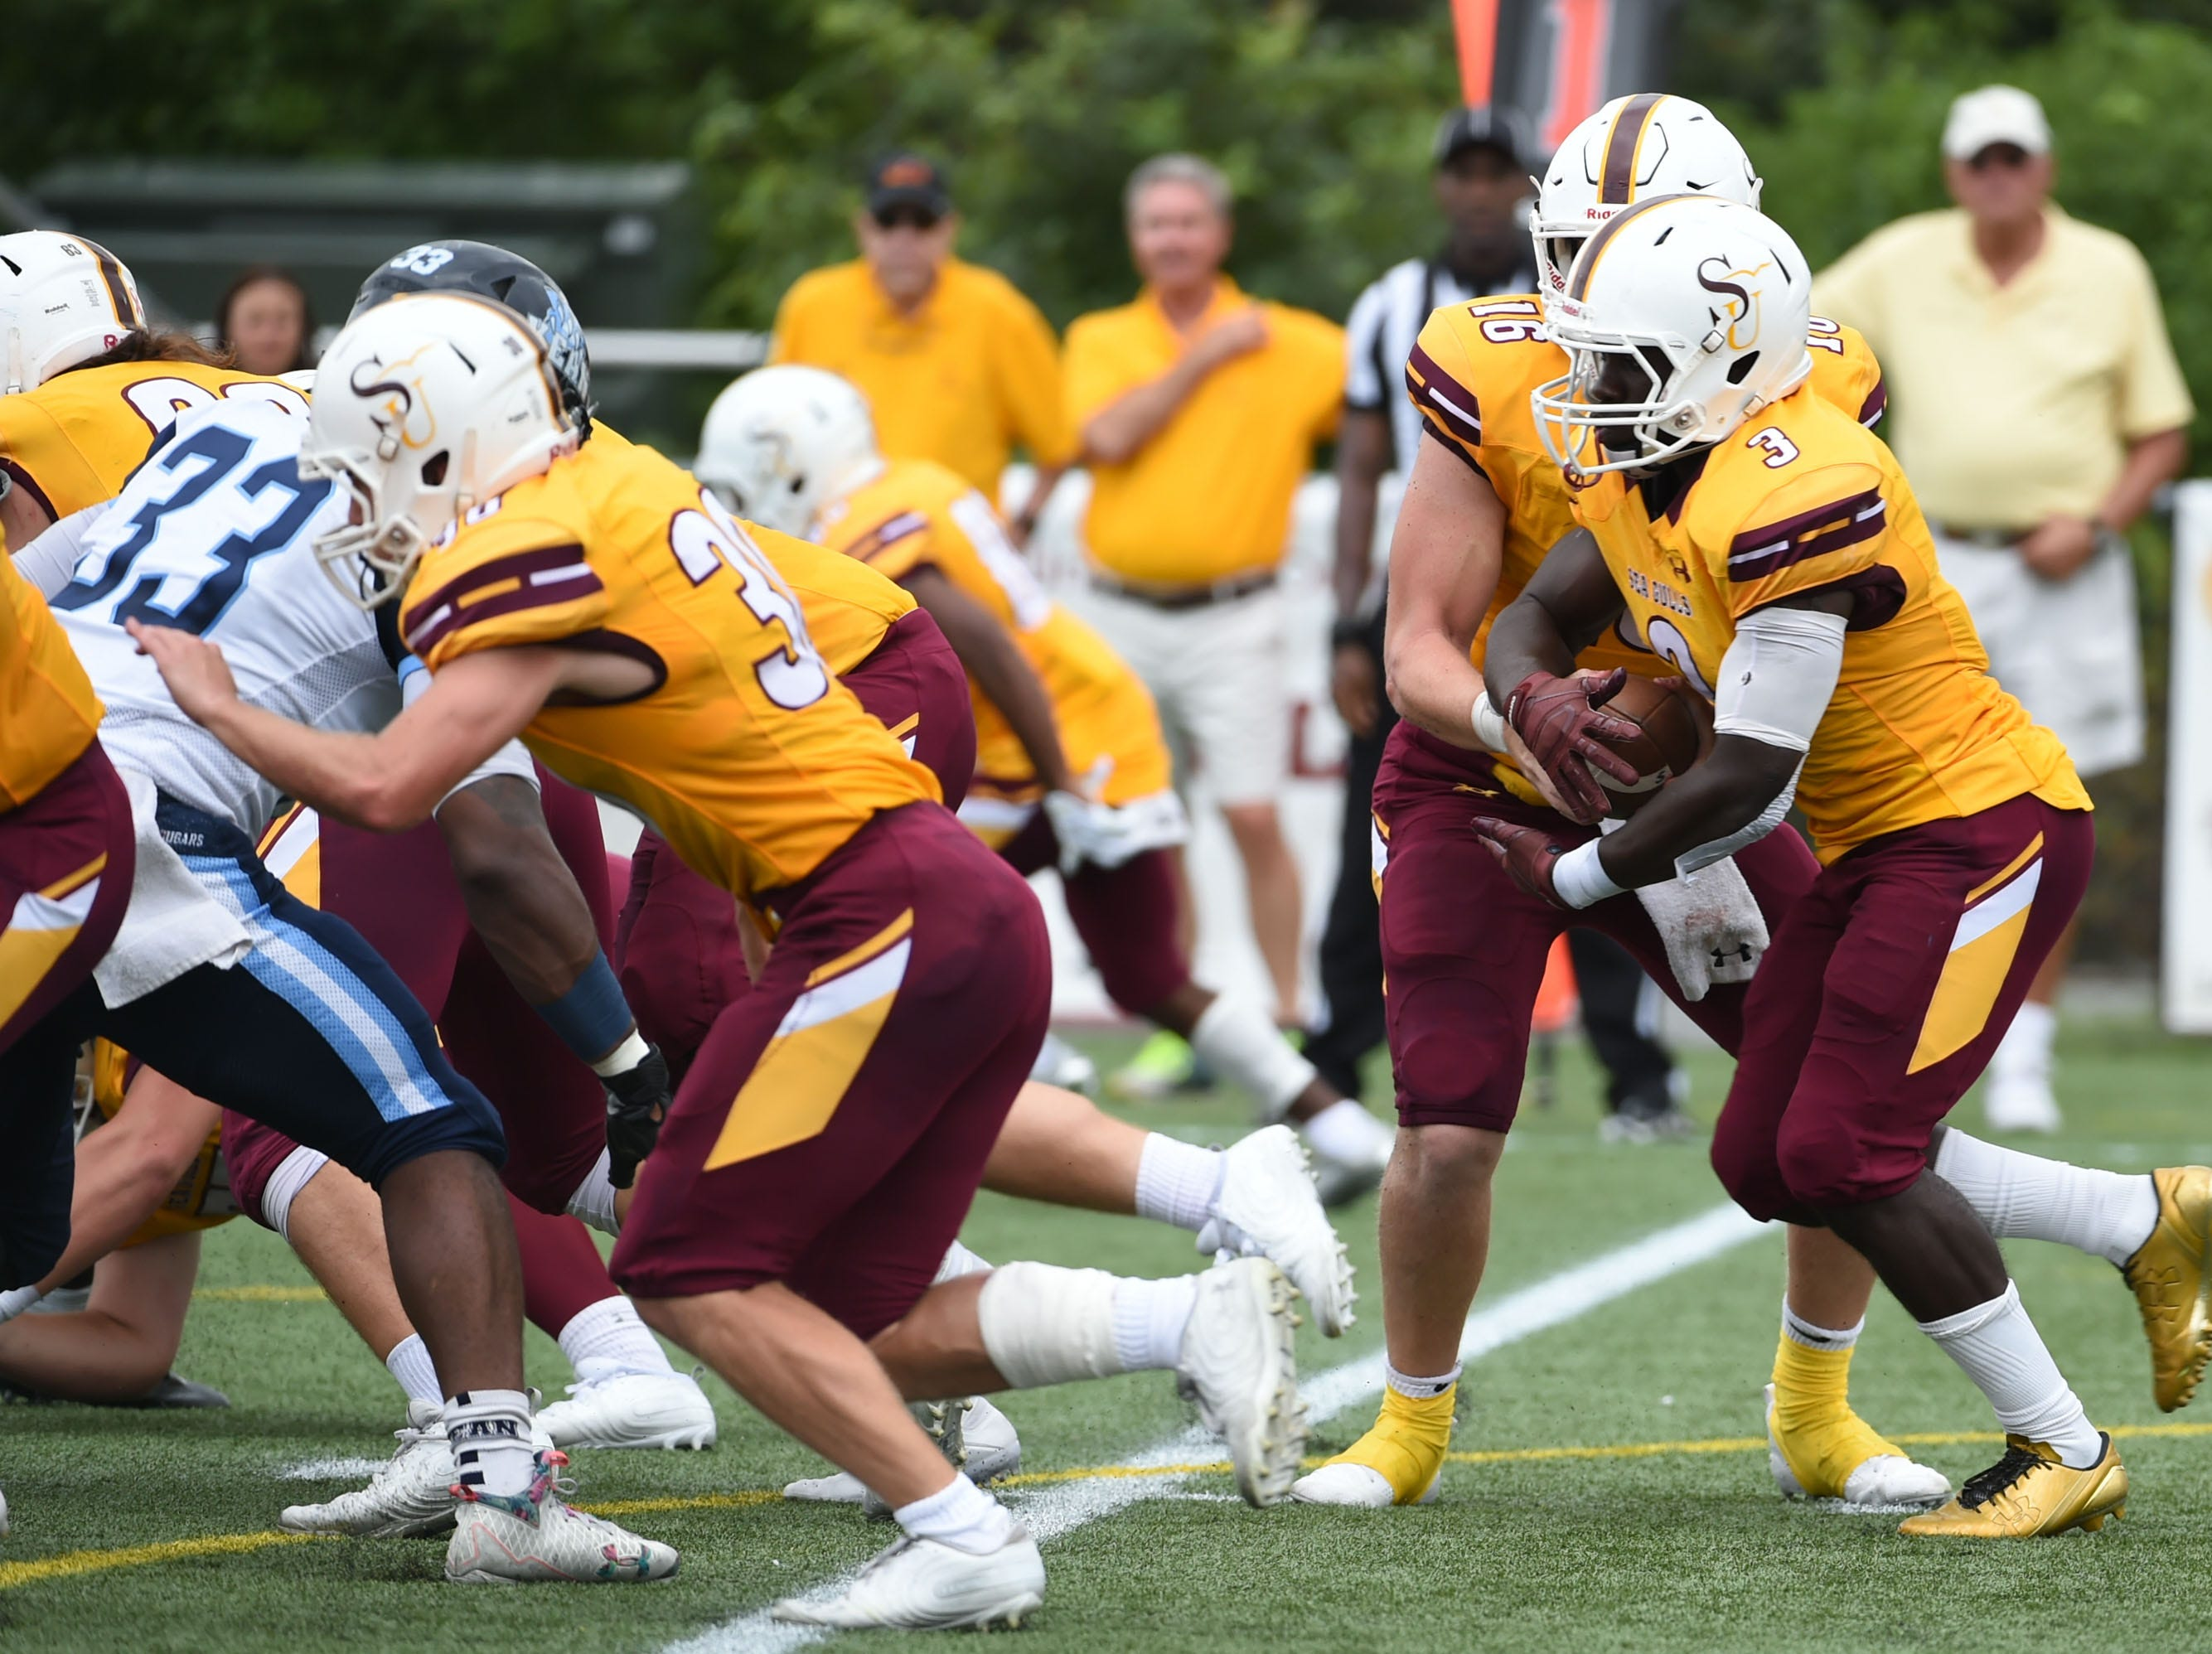 Salisbury's Mike-Ryan Mofor with the carry against Kean on Saturday, Sept. 15, 2018 at Seagull Stadium.